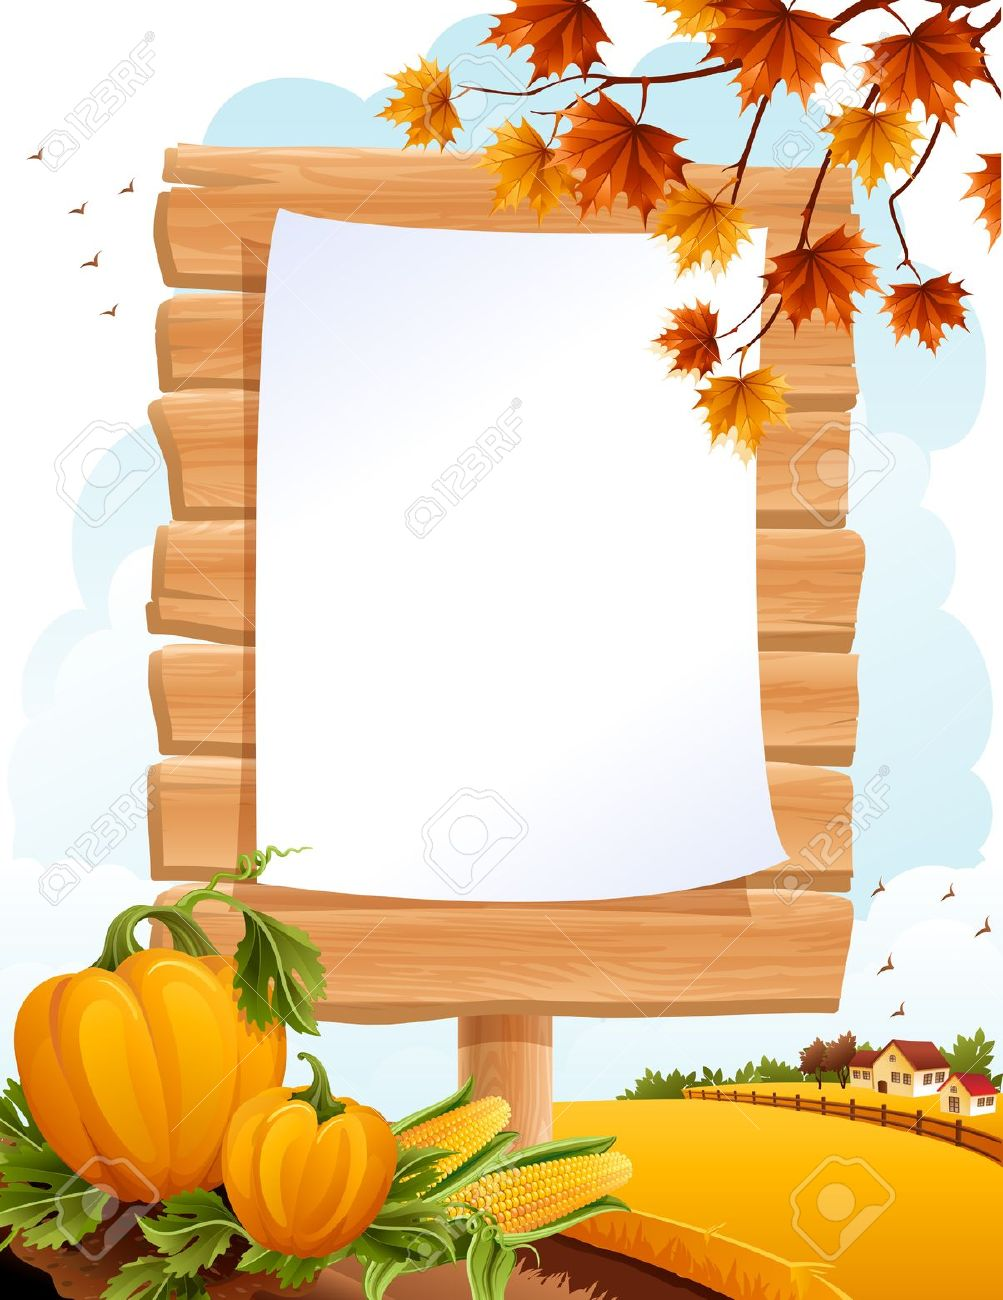 Autumn Landscape With The Wooden Sing Royalty Free Cliparts.